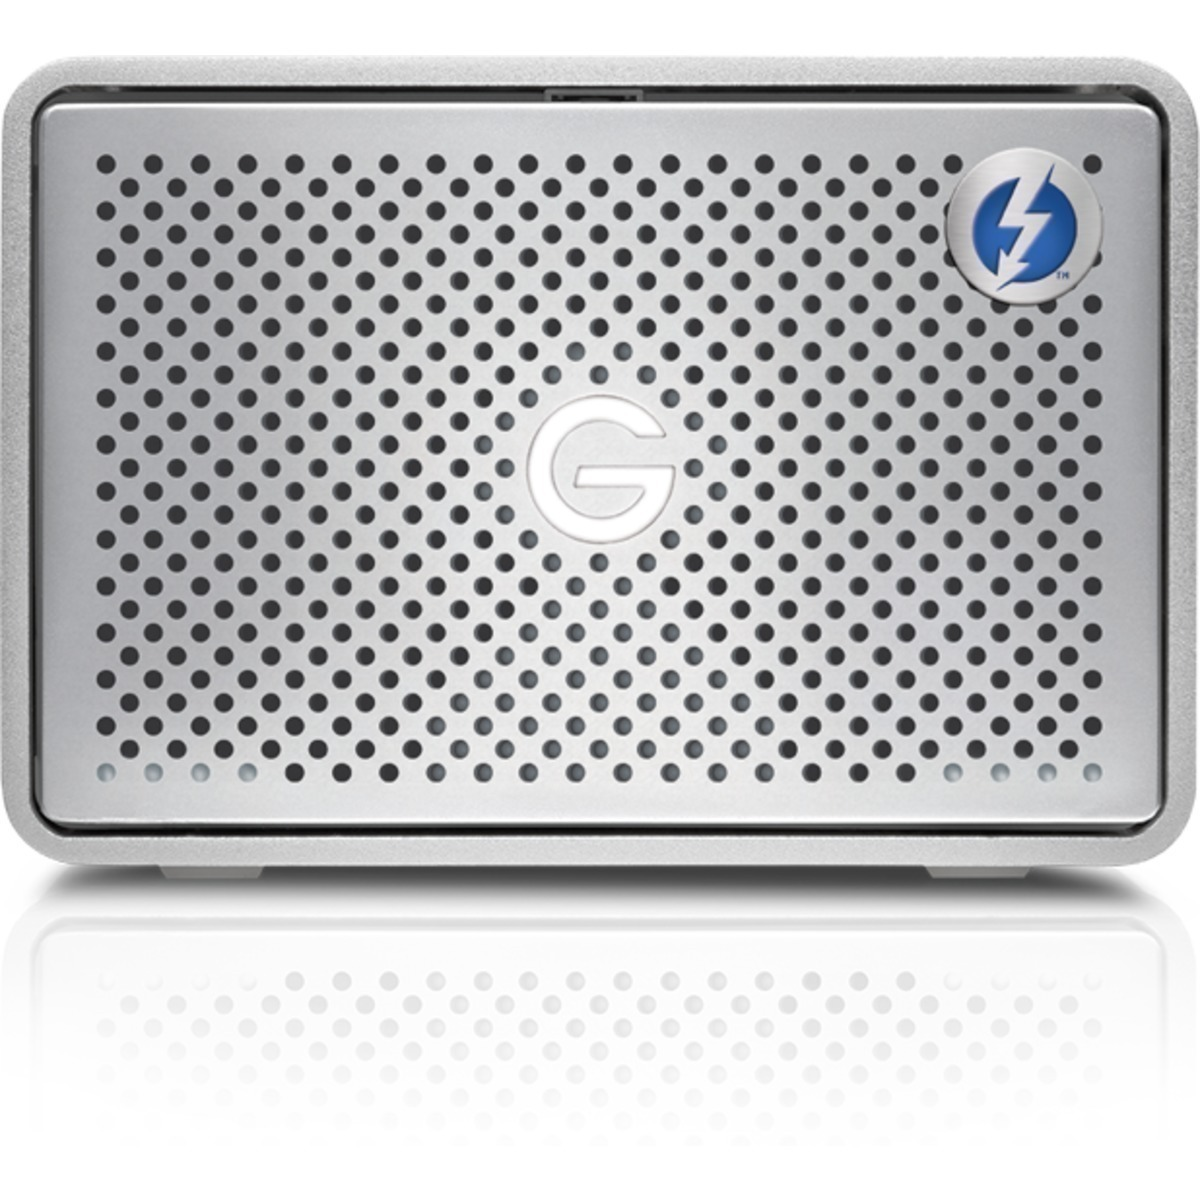 buy G-Technology G-RAID Thunderbolt 3 USB 3.1 Type-C Desktop DAS - Direct Attached Storage Device Burn-In Tested Configurations - nas headquarters buy network attached storage server device das new sale raid-5 free shipping usa G-RAID Thunderbolt 3 USB 3.1 Type-C